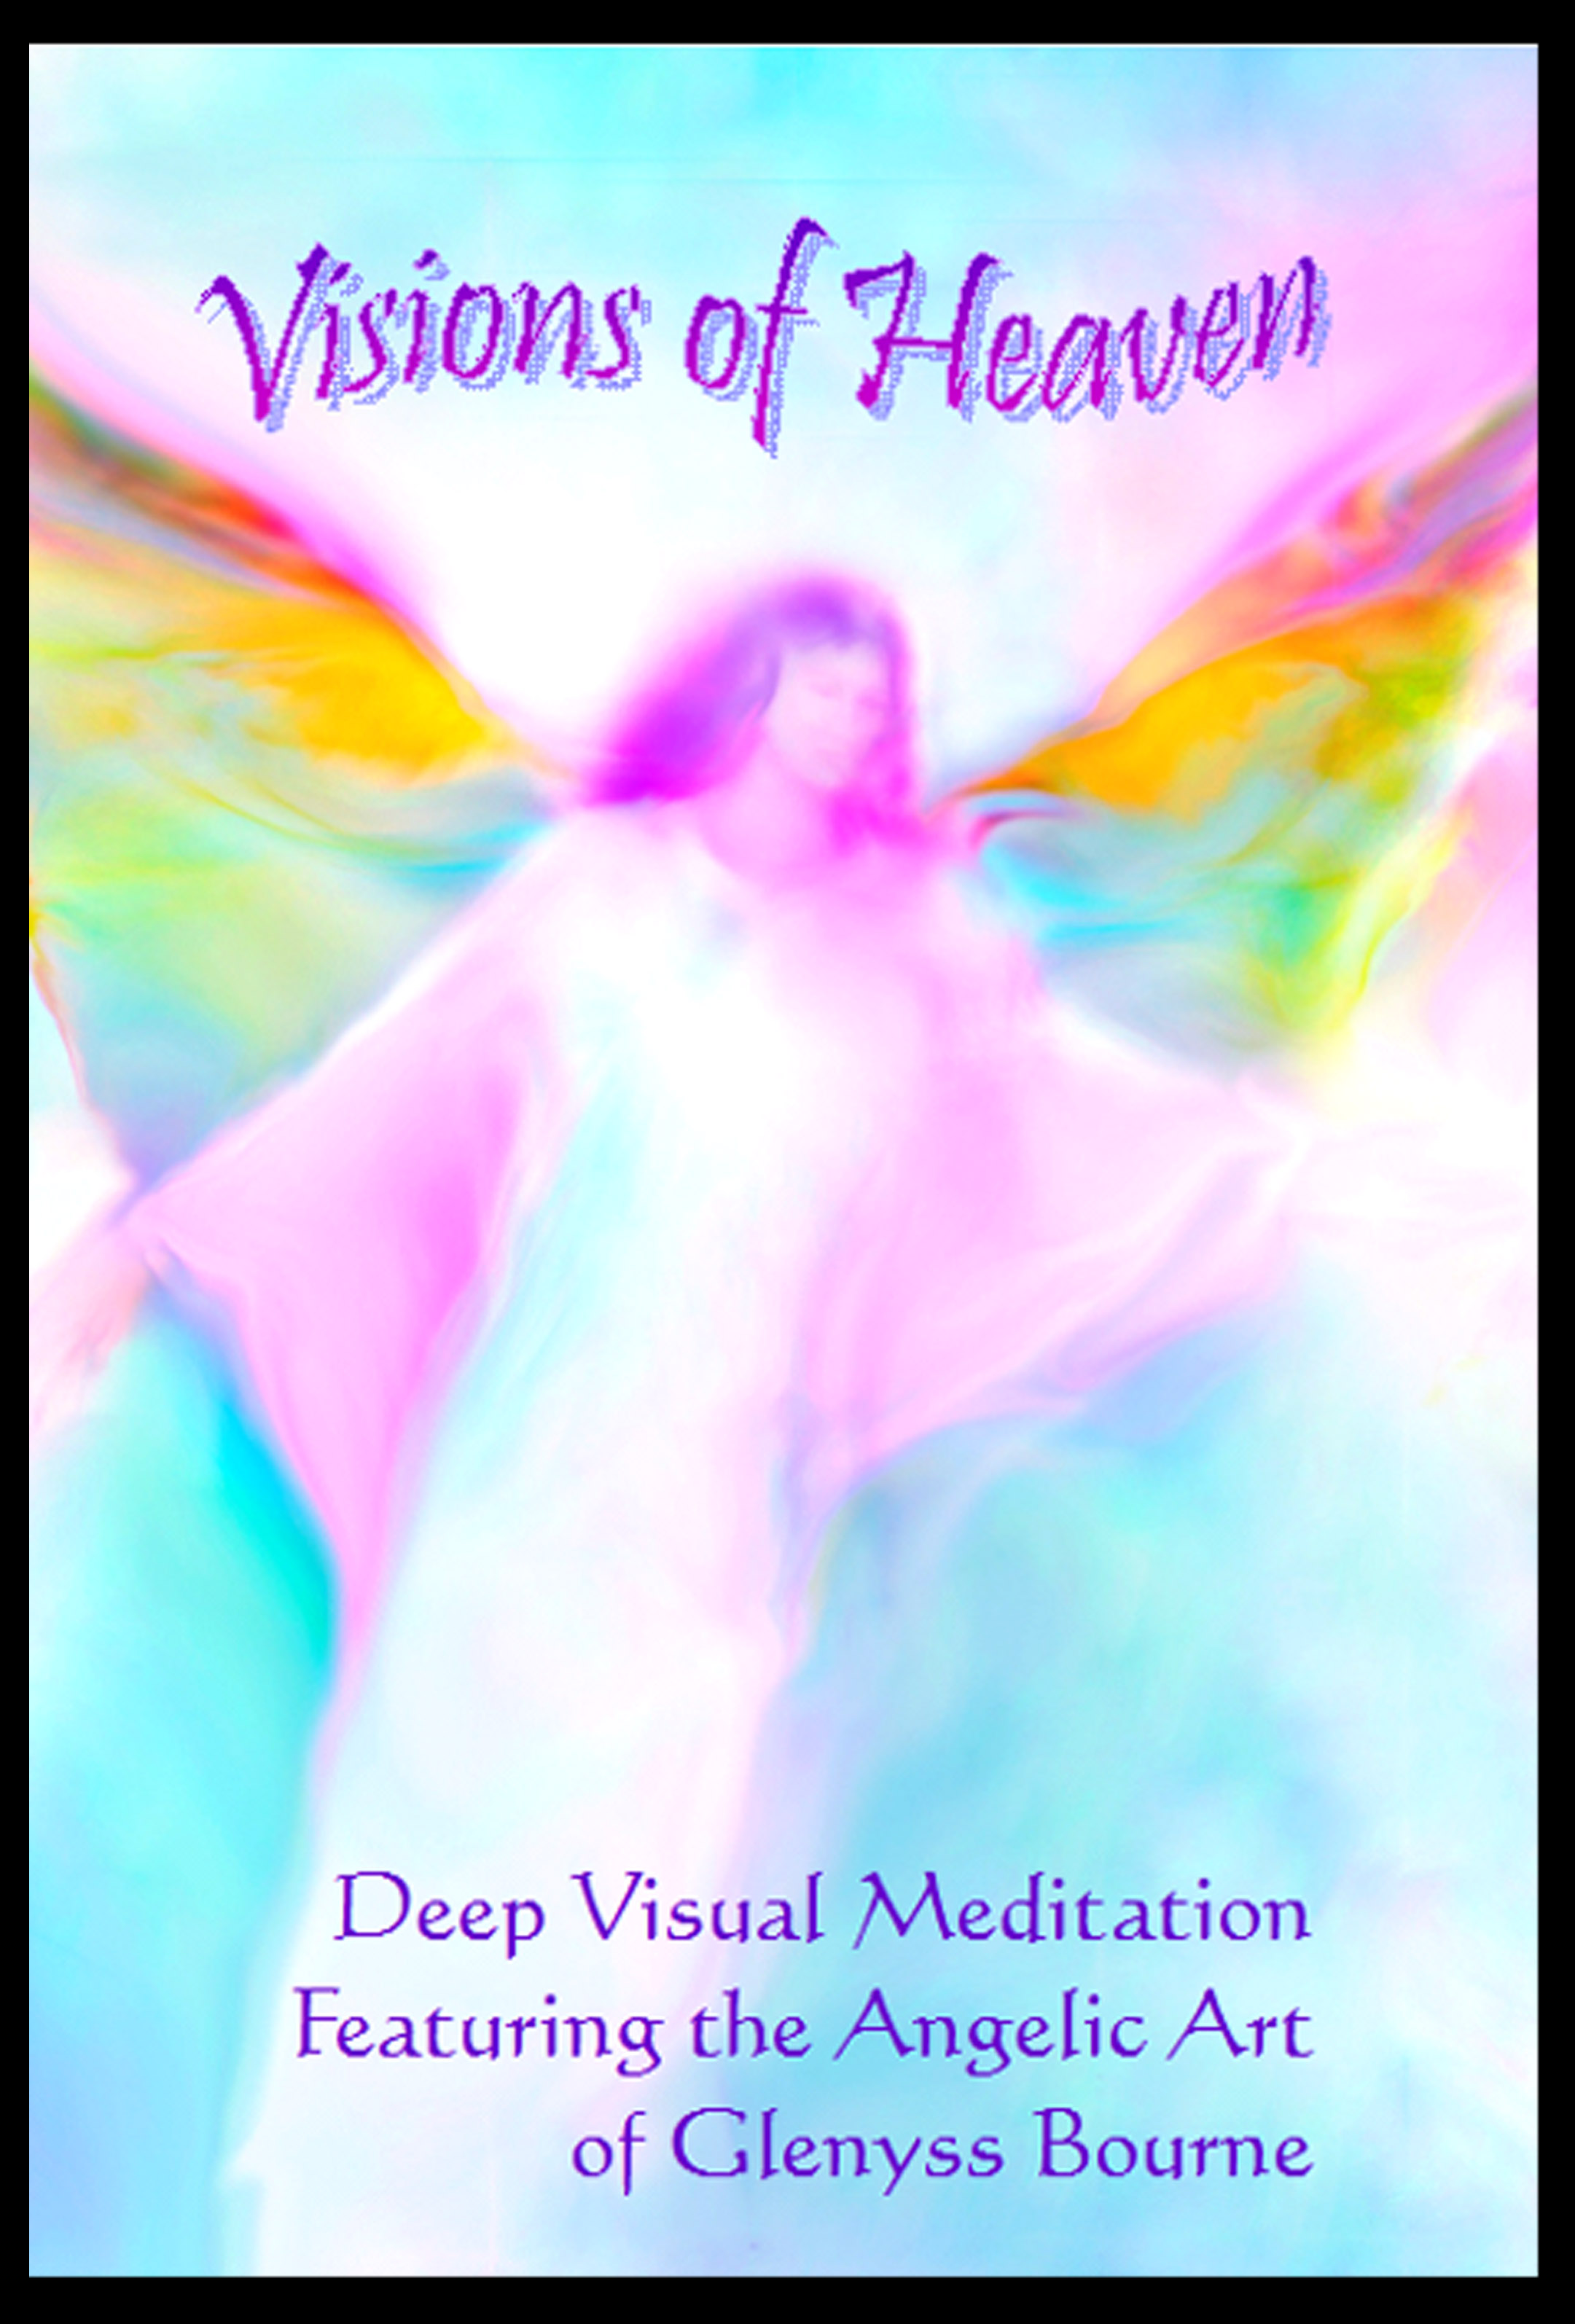 Visions of Heaven Meditation DVD